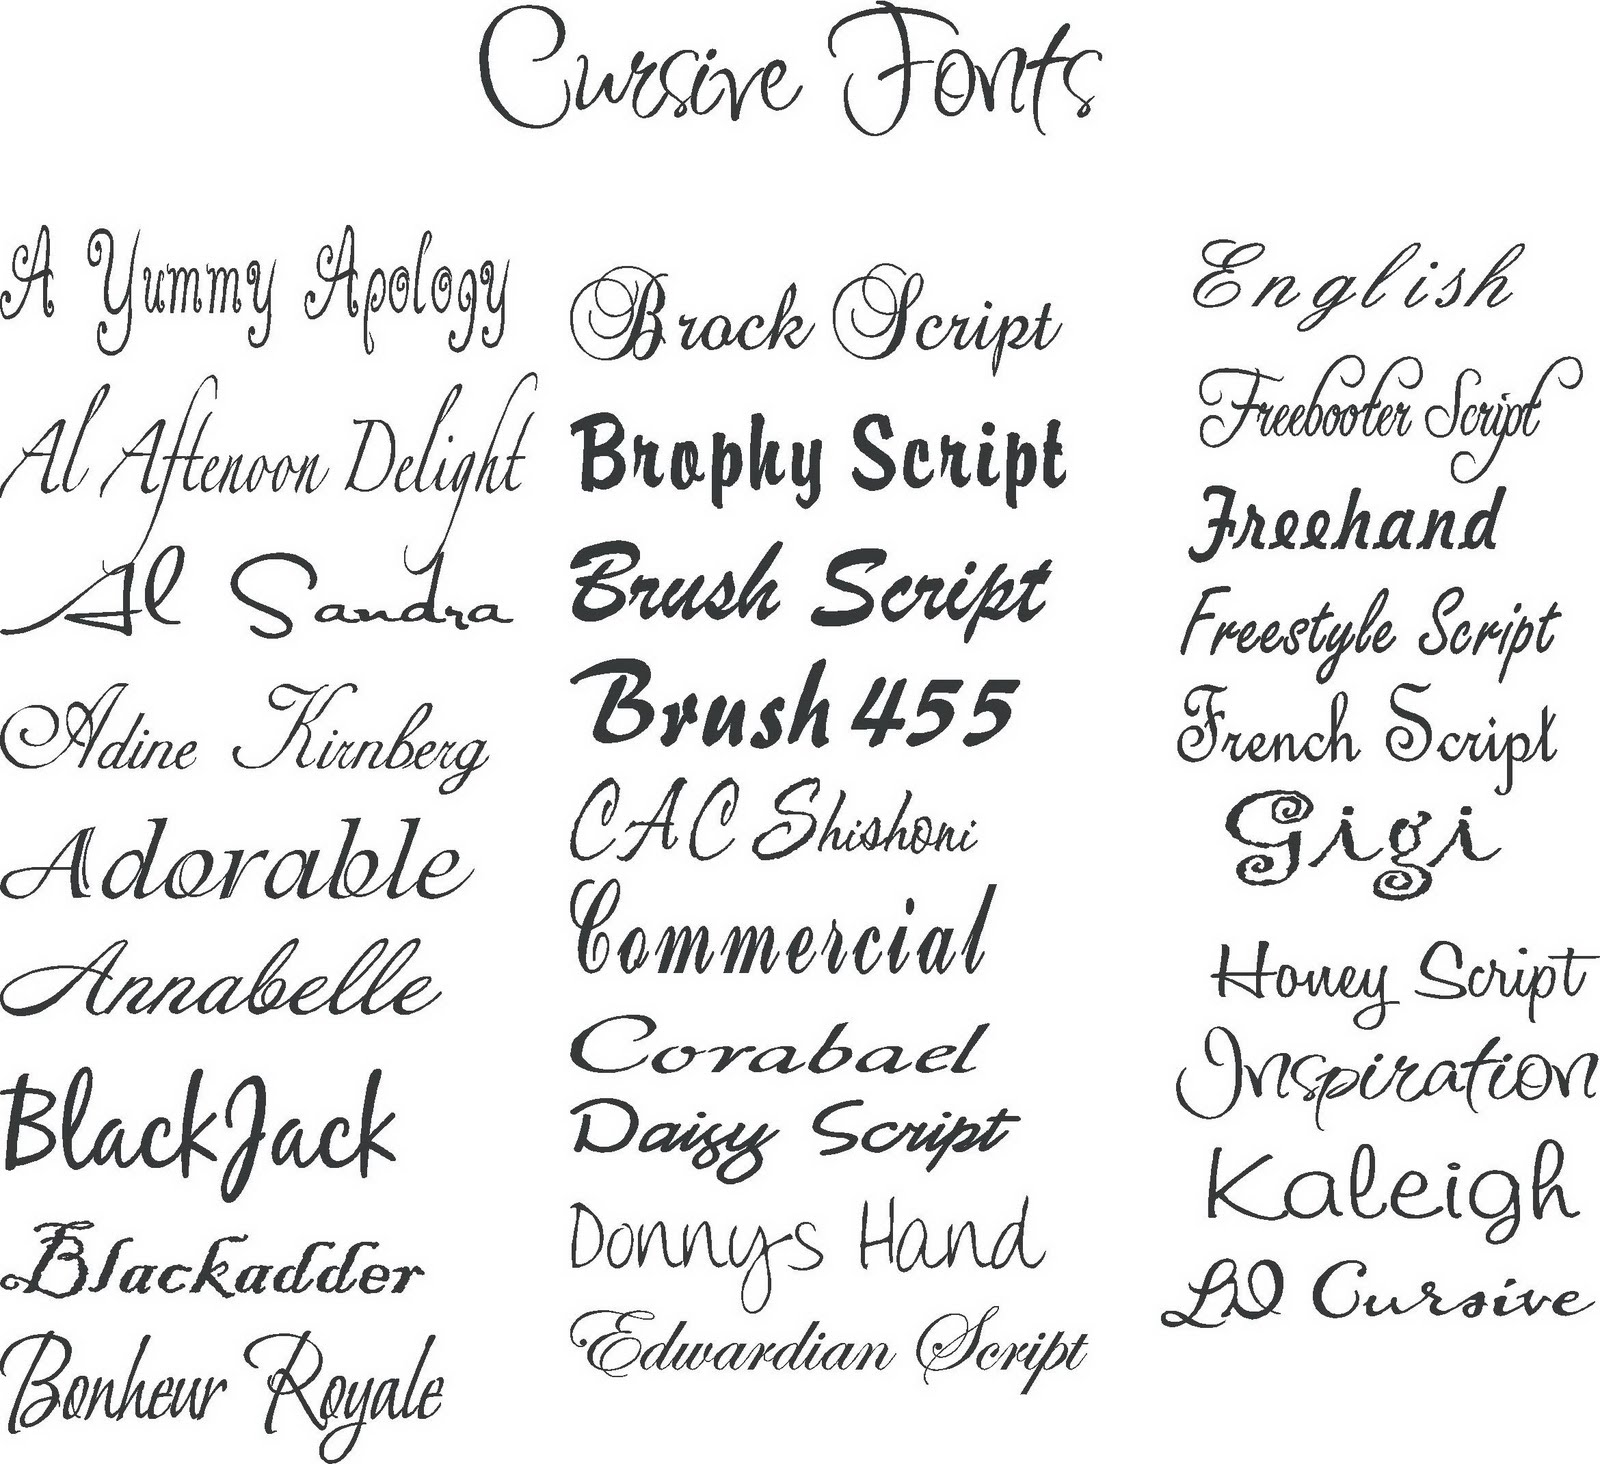 The Best Cursive Fonts for Tattoos eHow